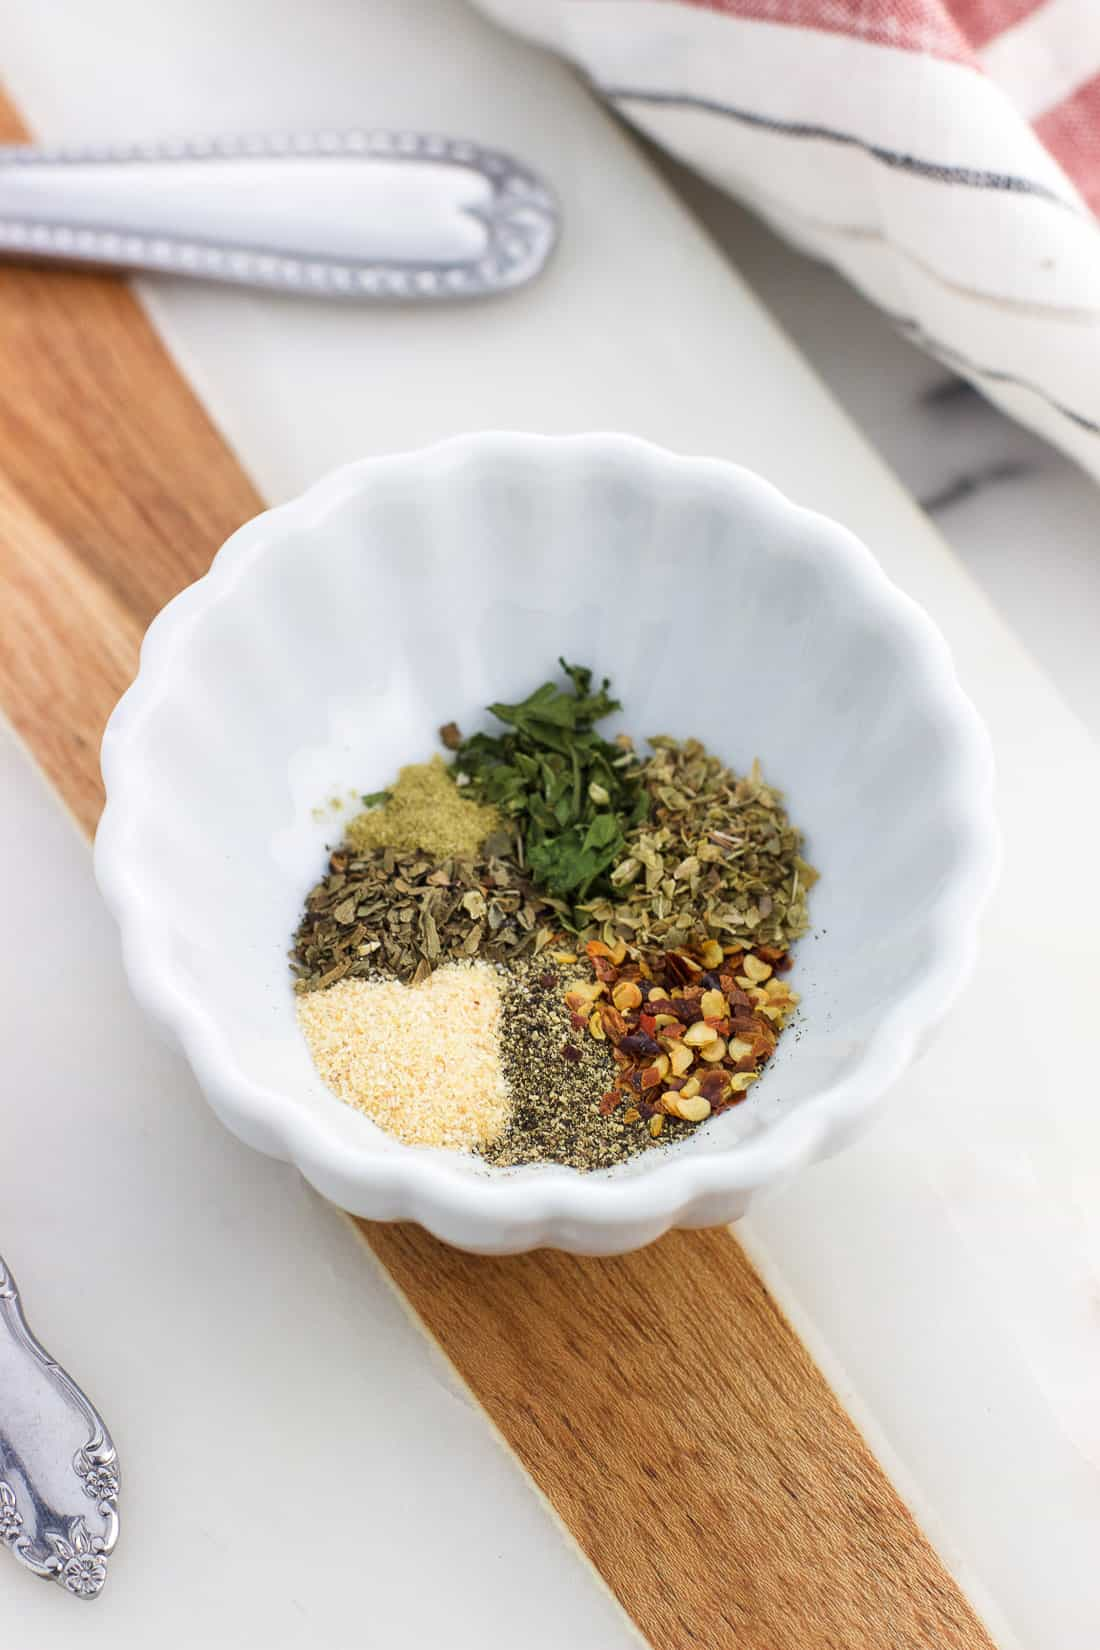 The dry soup spices in a small bowl